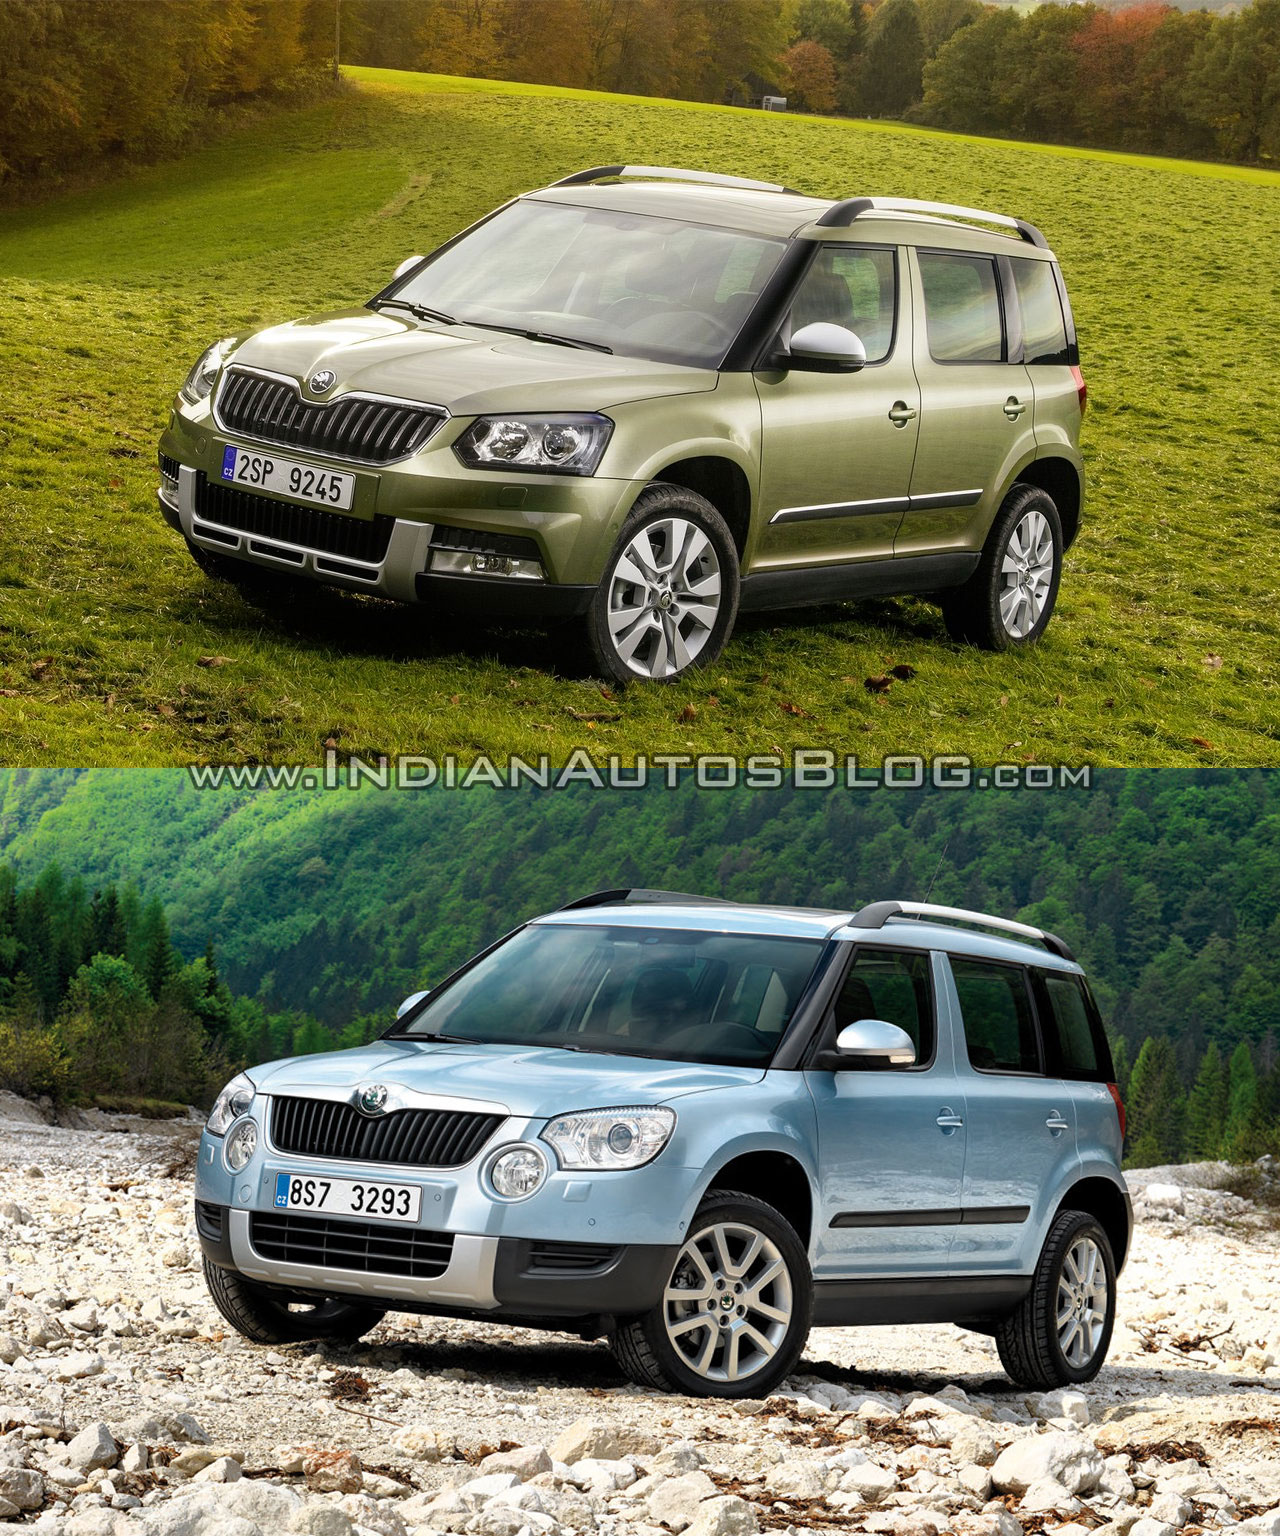 2014 Skoda Yeti facelift vs old Skoda Yeti front three quarter